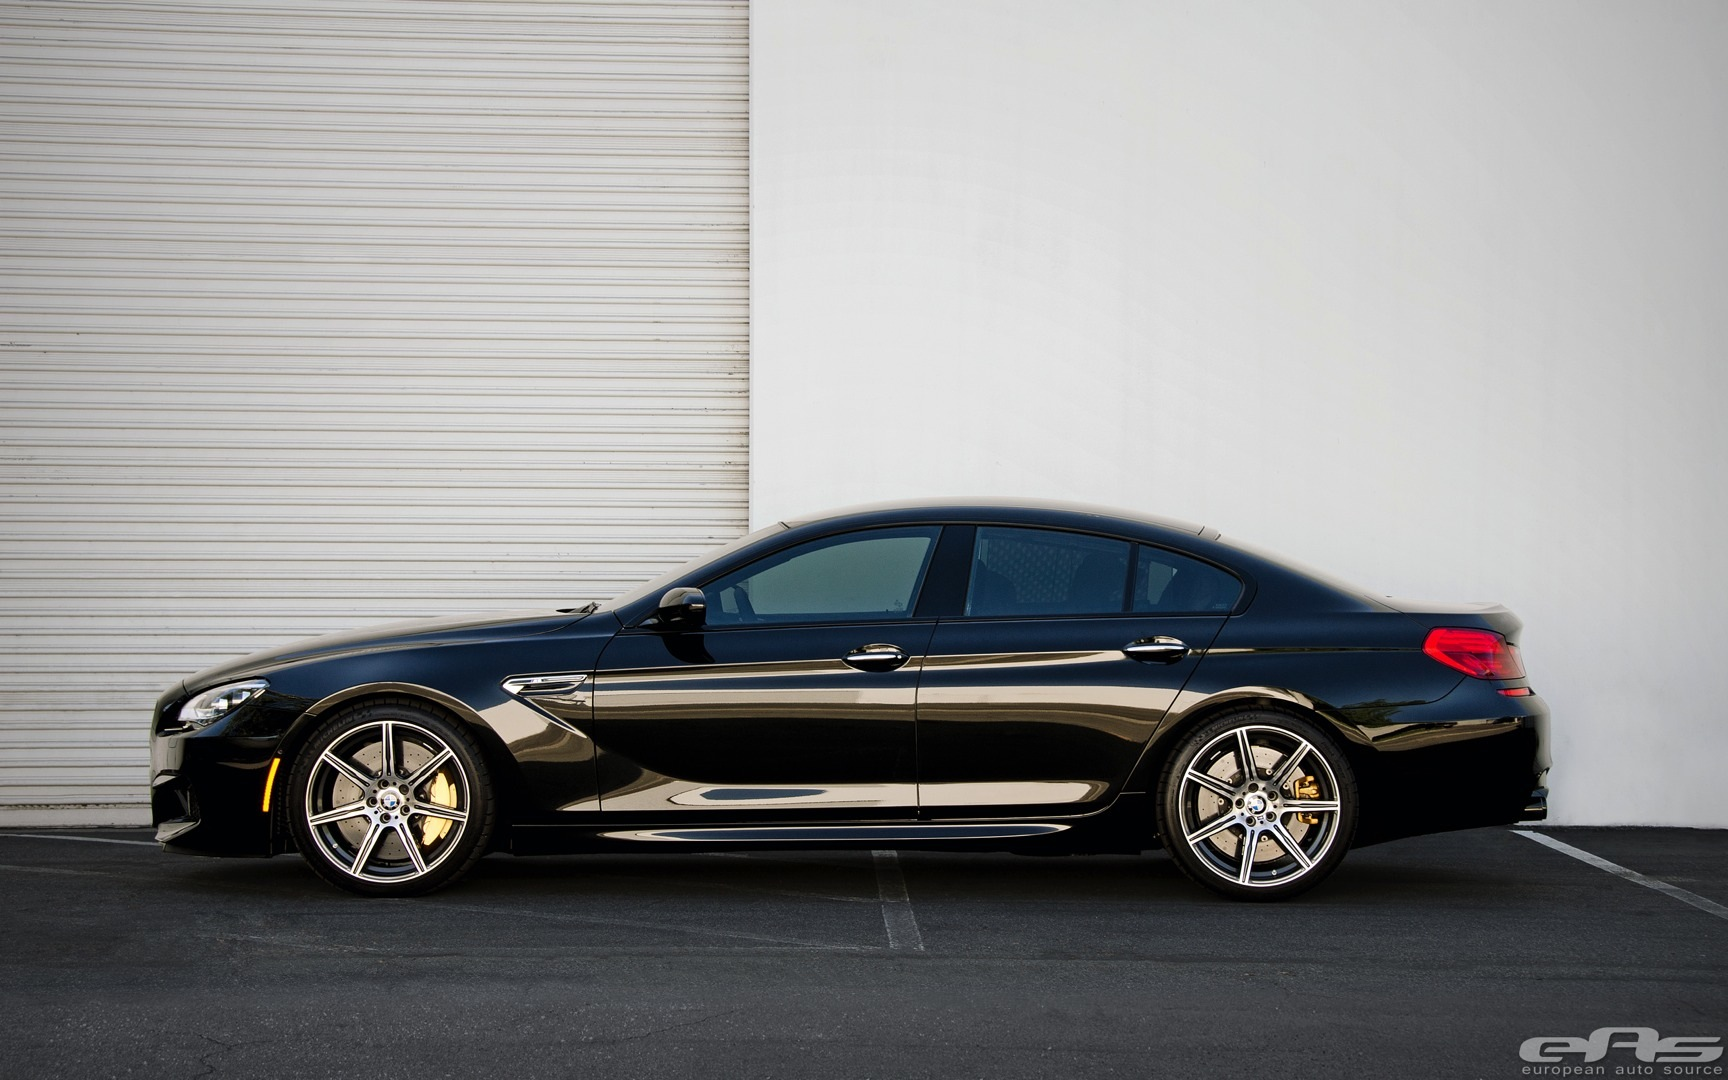 Competition Package Bmw M6 Gran Coupe Goes Completely Black Autoevolution